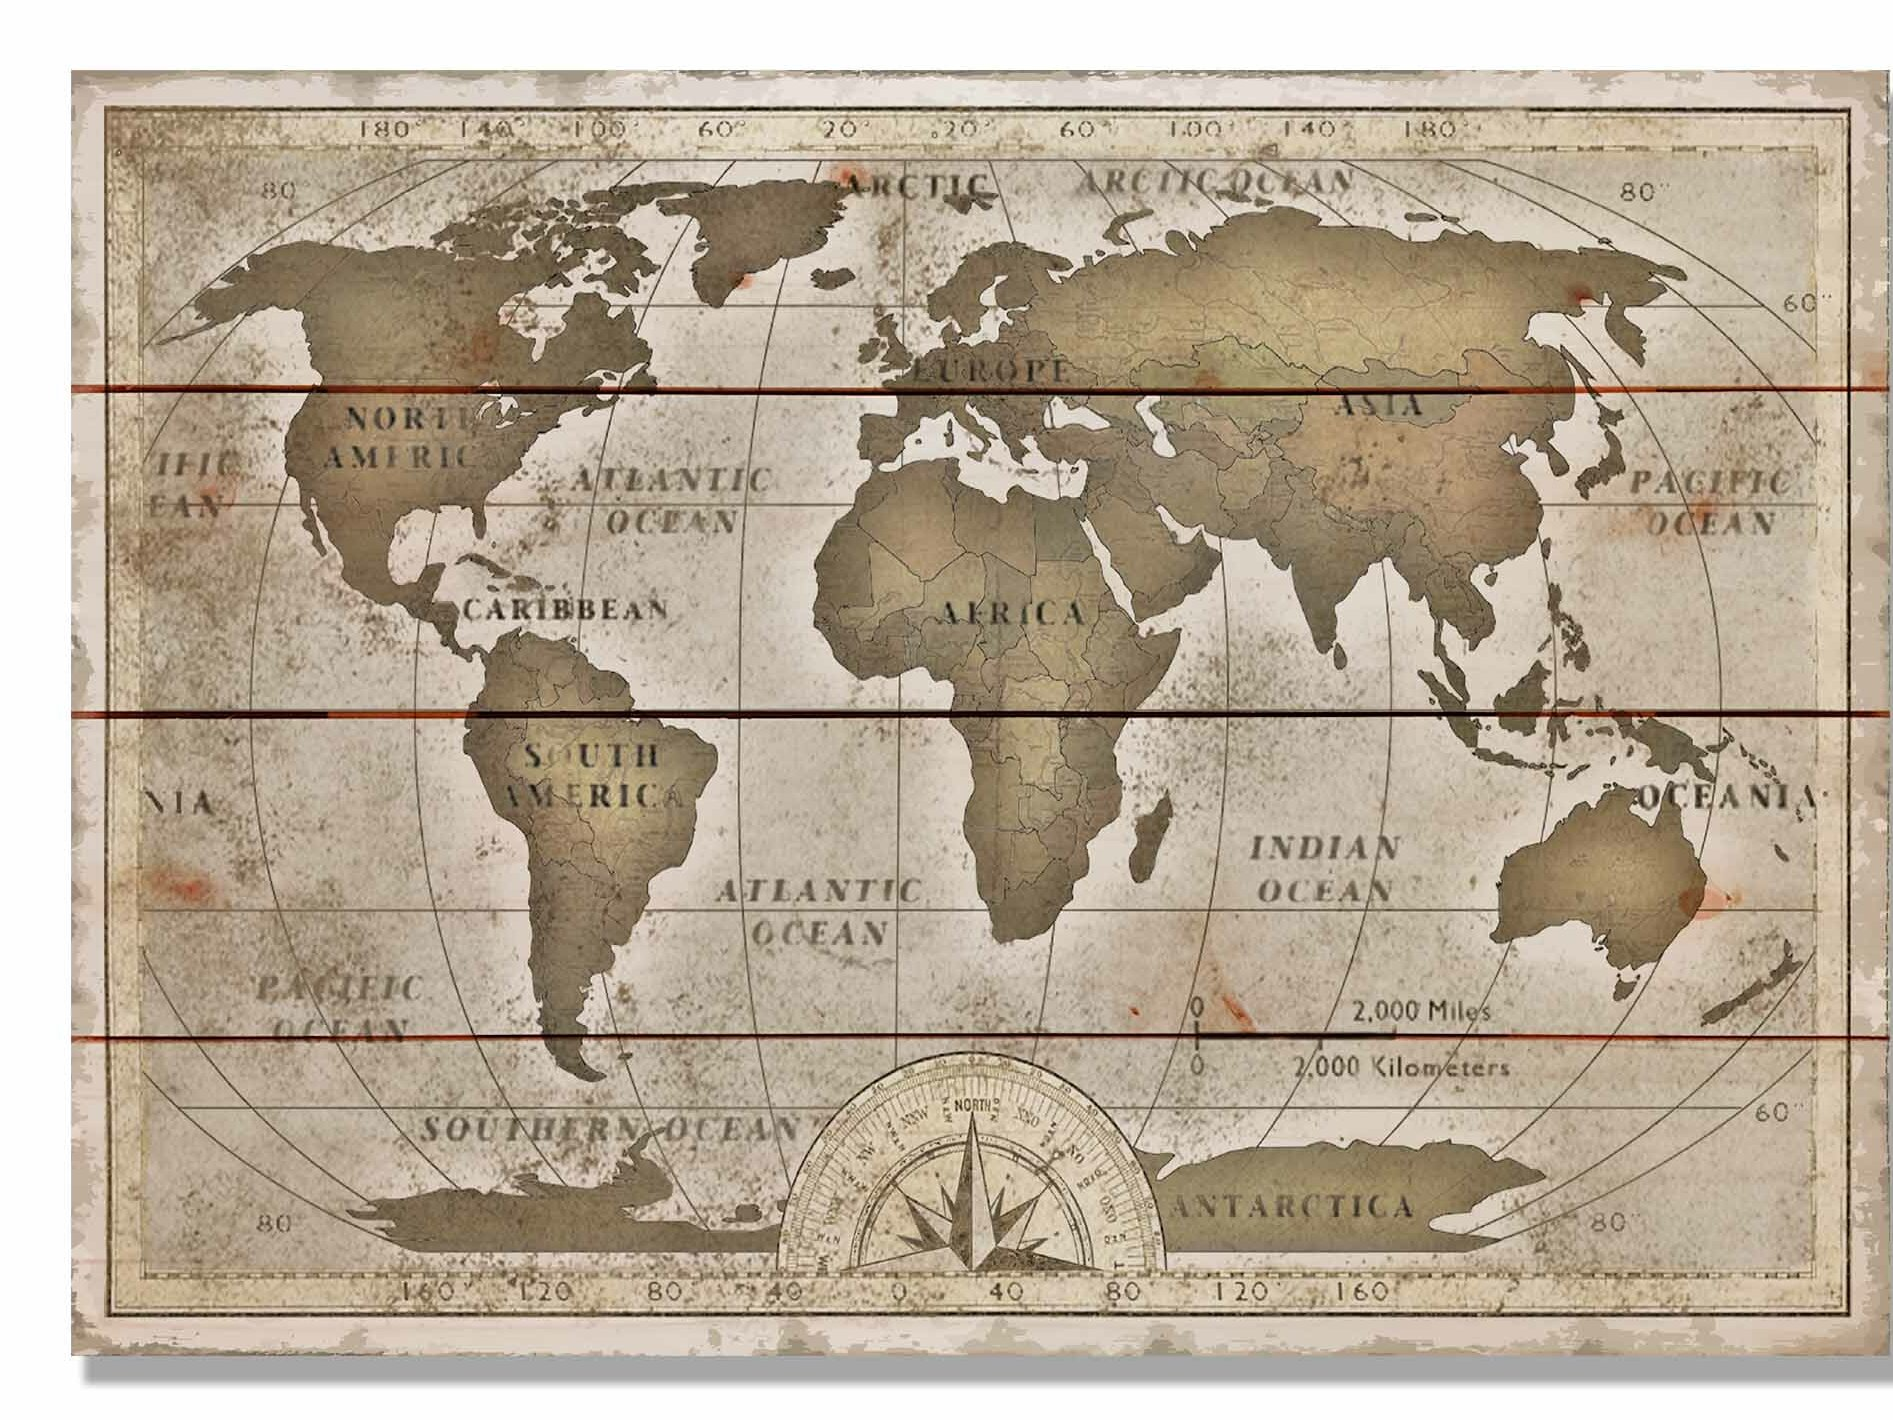 Daydream hq old world map graphic art on wood ebay daydream hq 039 old world map 039 graphic gumiabroncs Choice Image